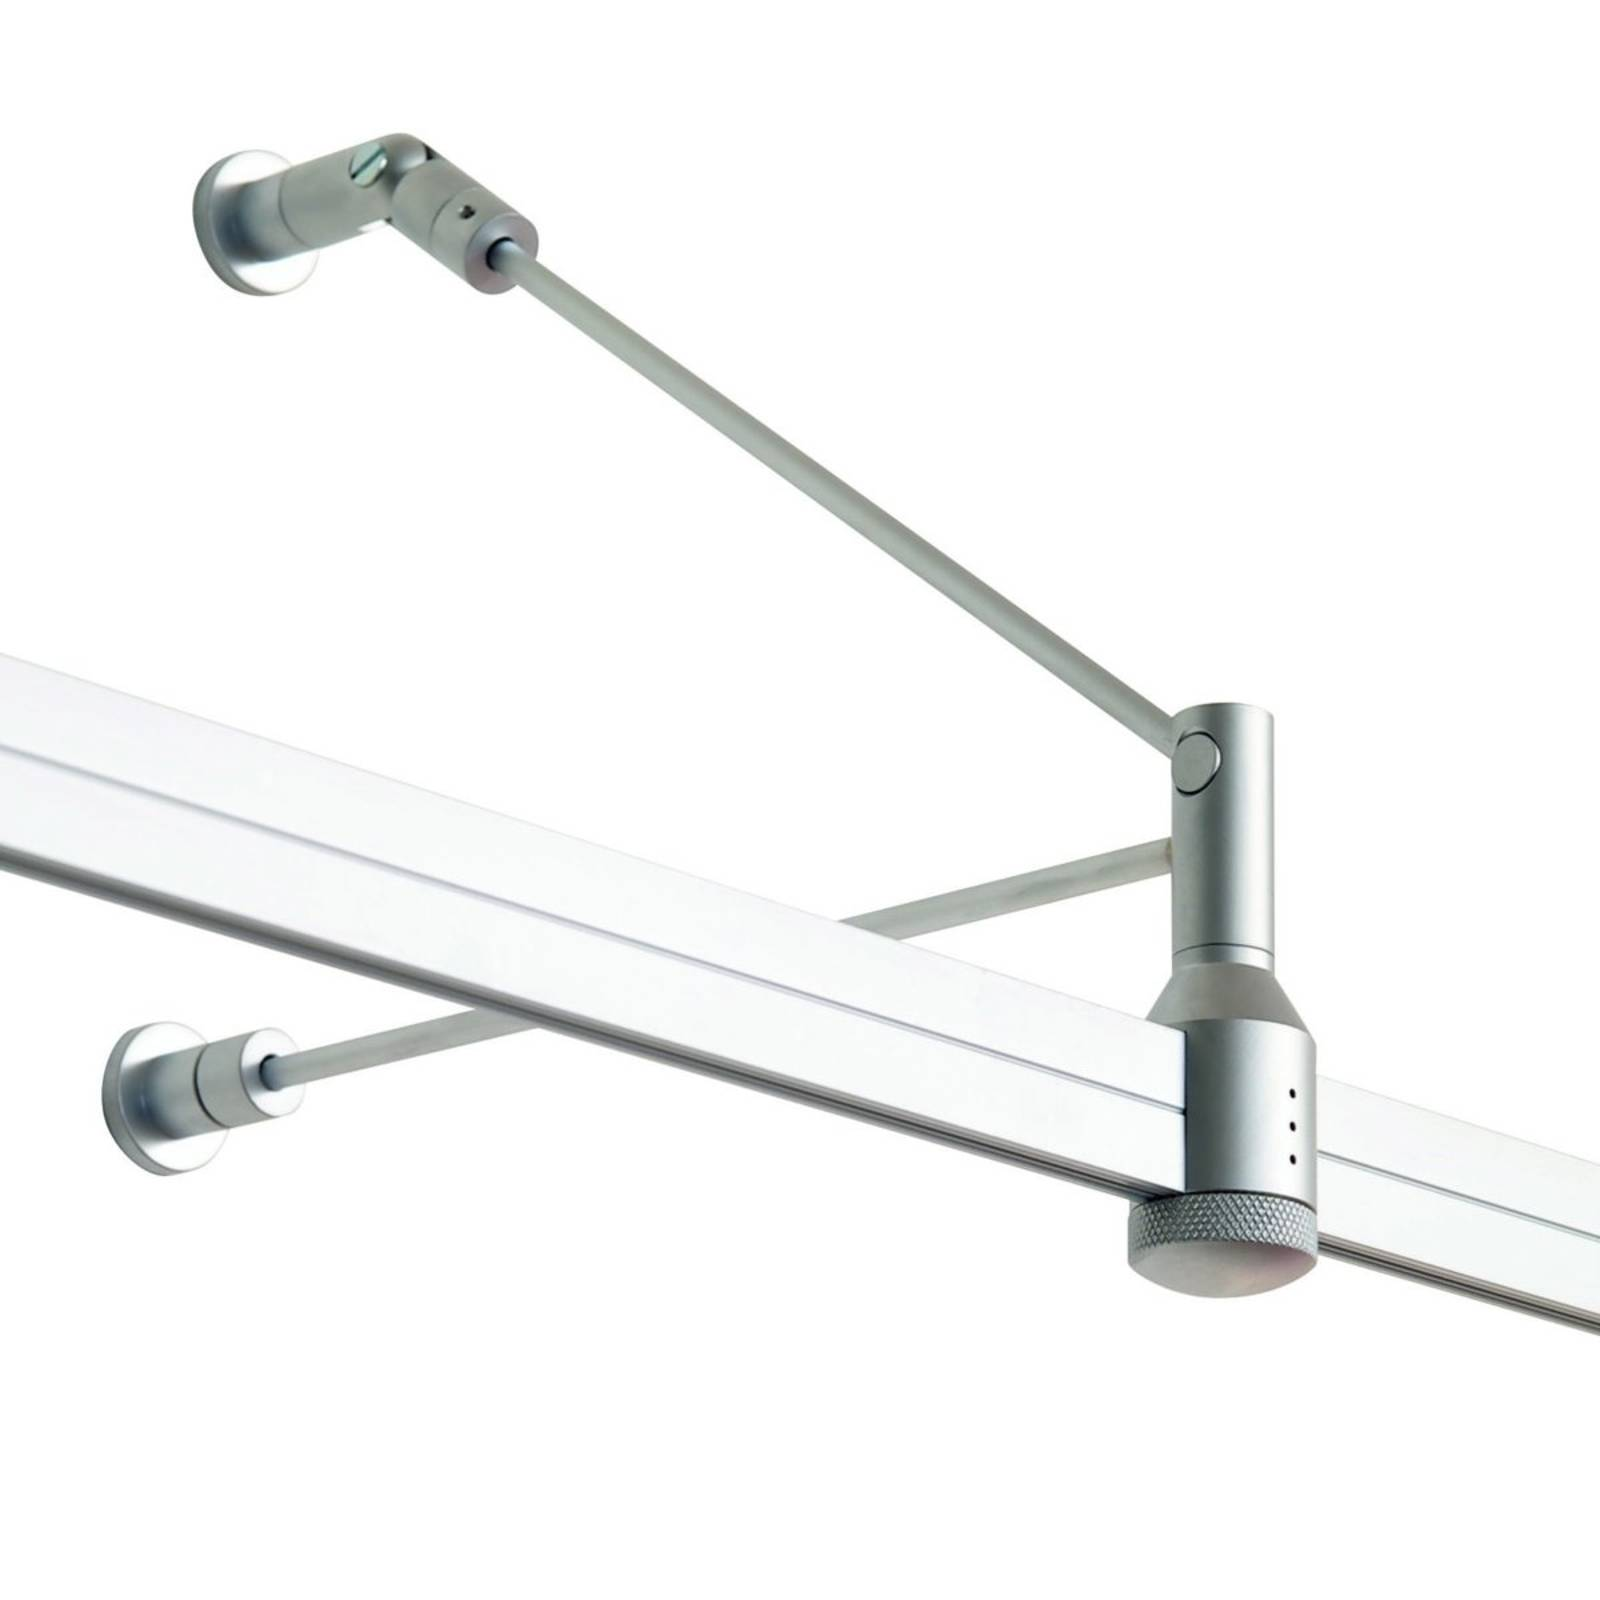 Track cantilever - track lighting system Check-In from Oligo